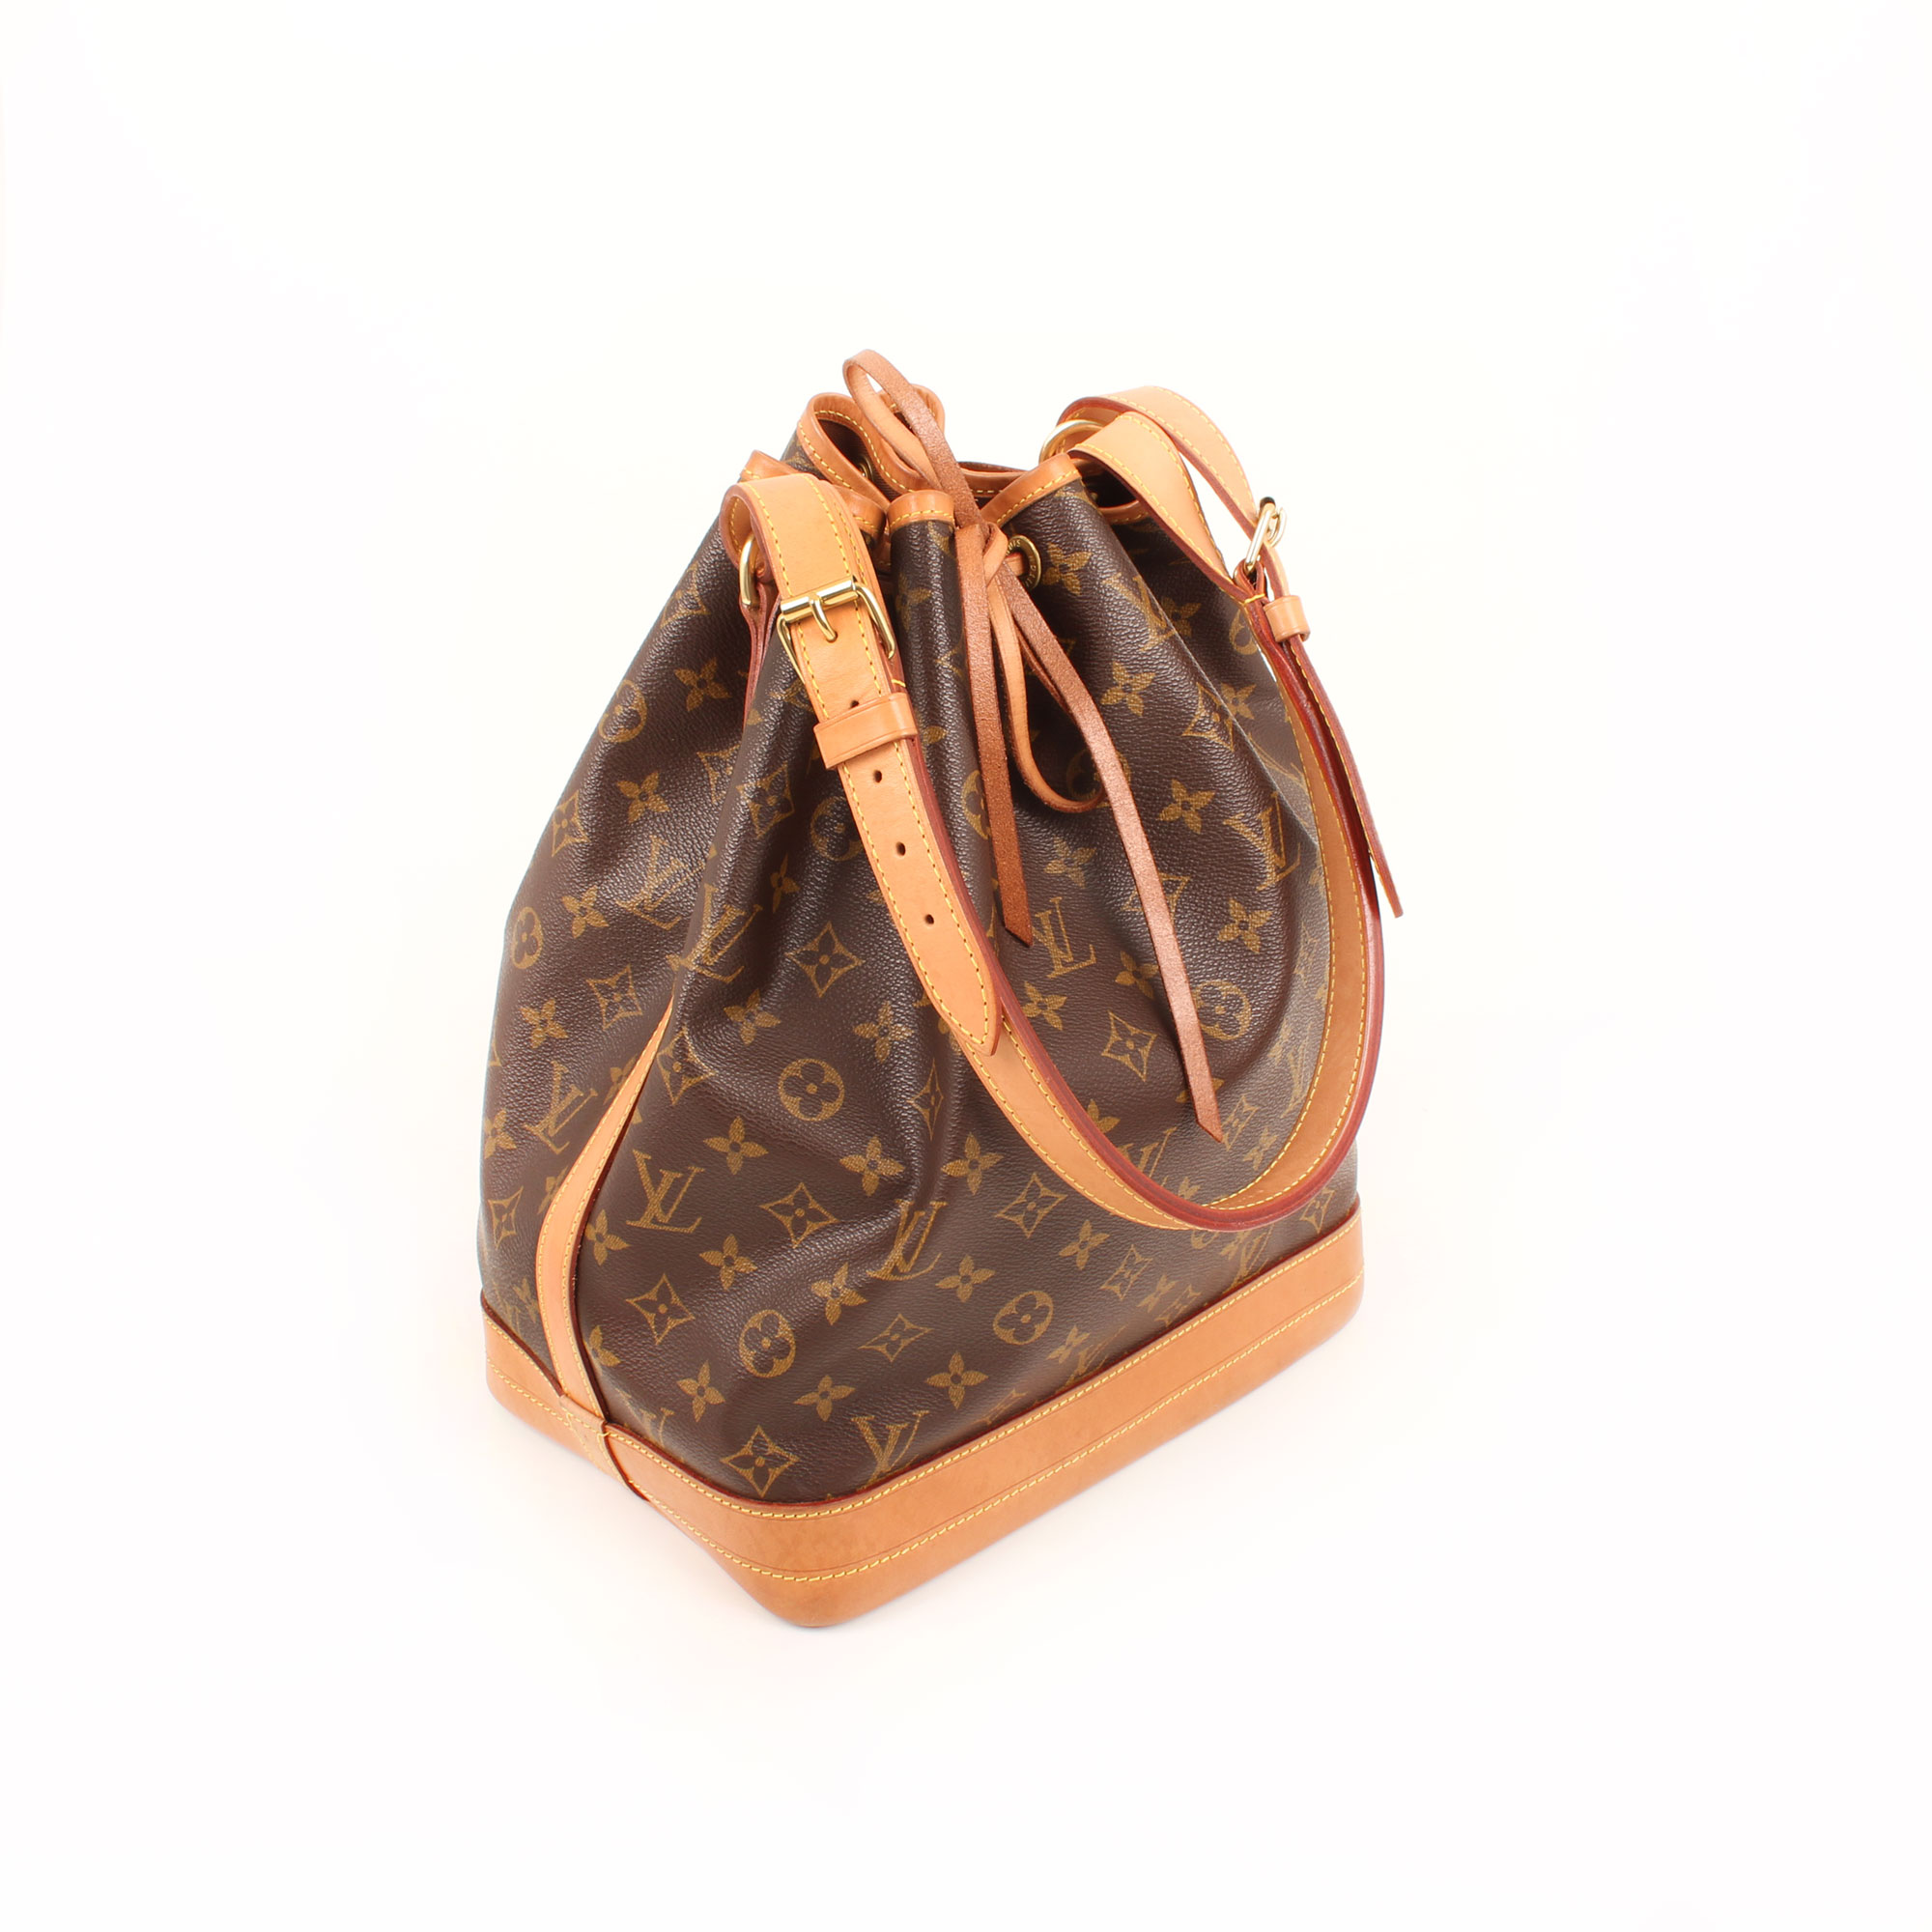 Imagen general del bolso louis vuitton noe monogram